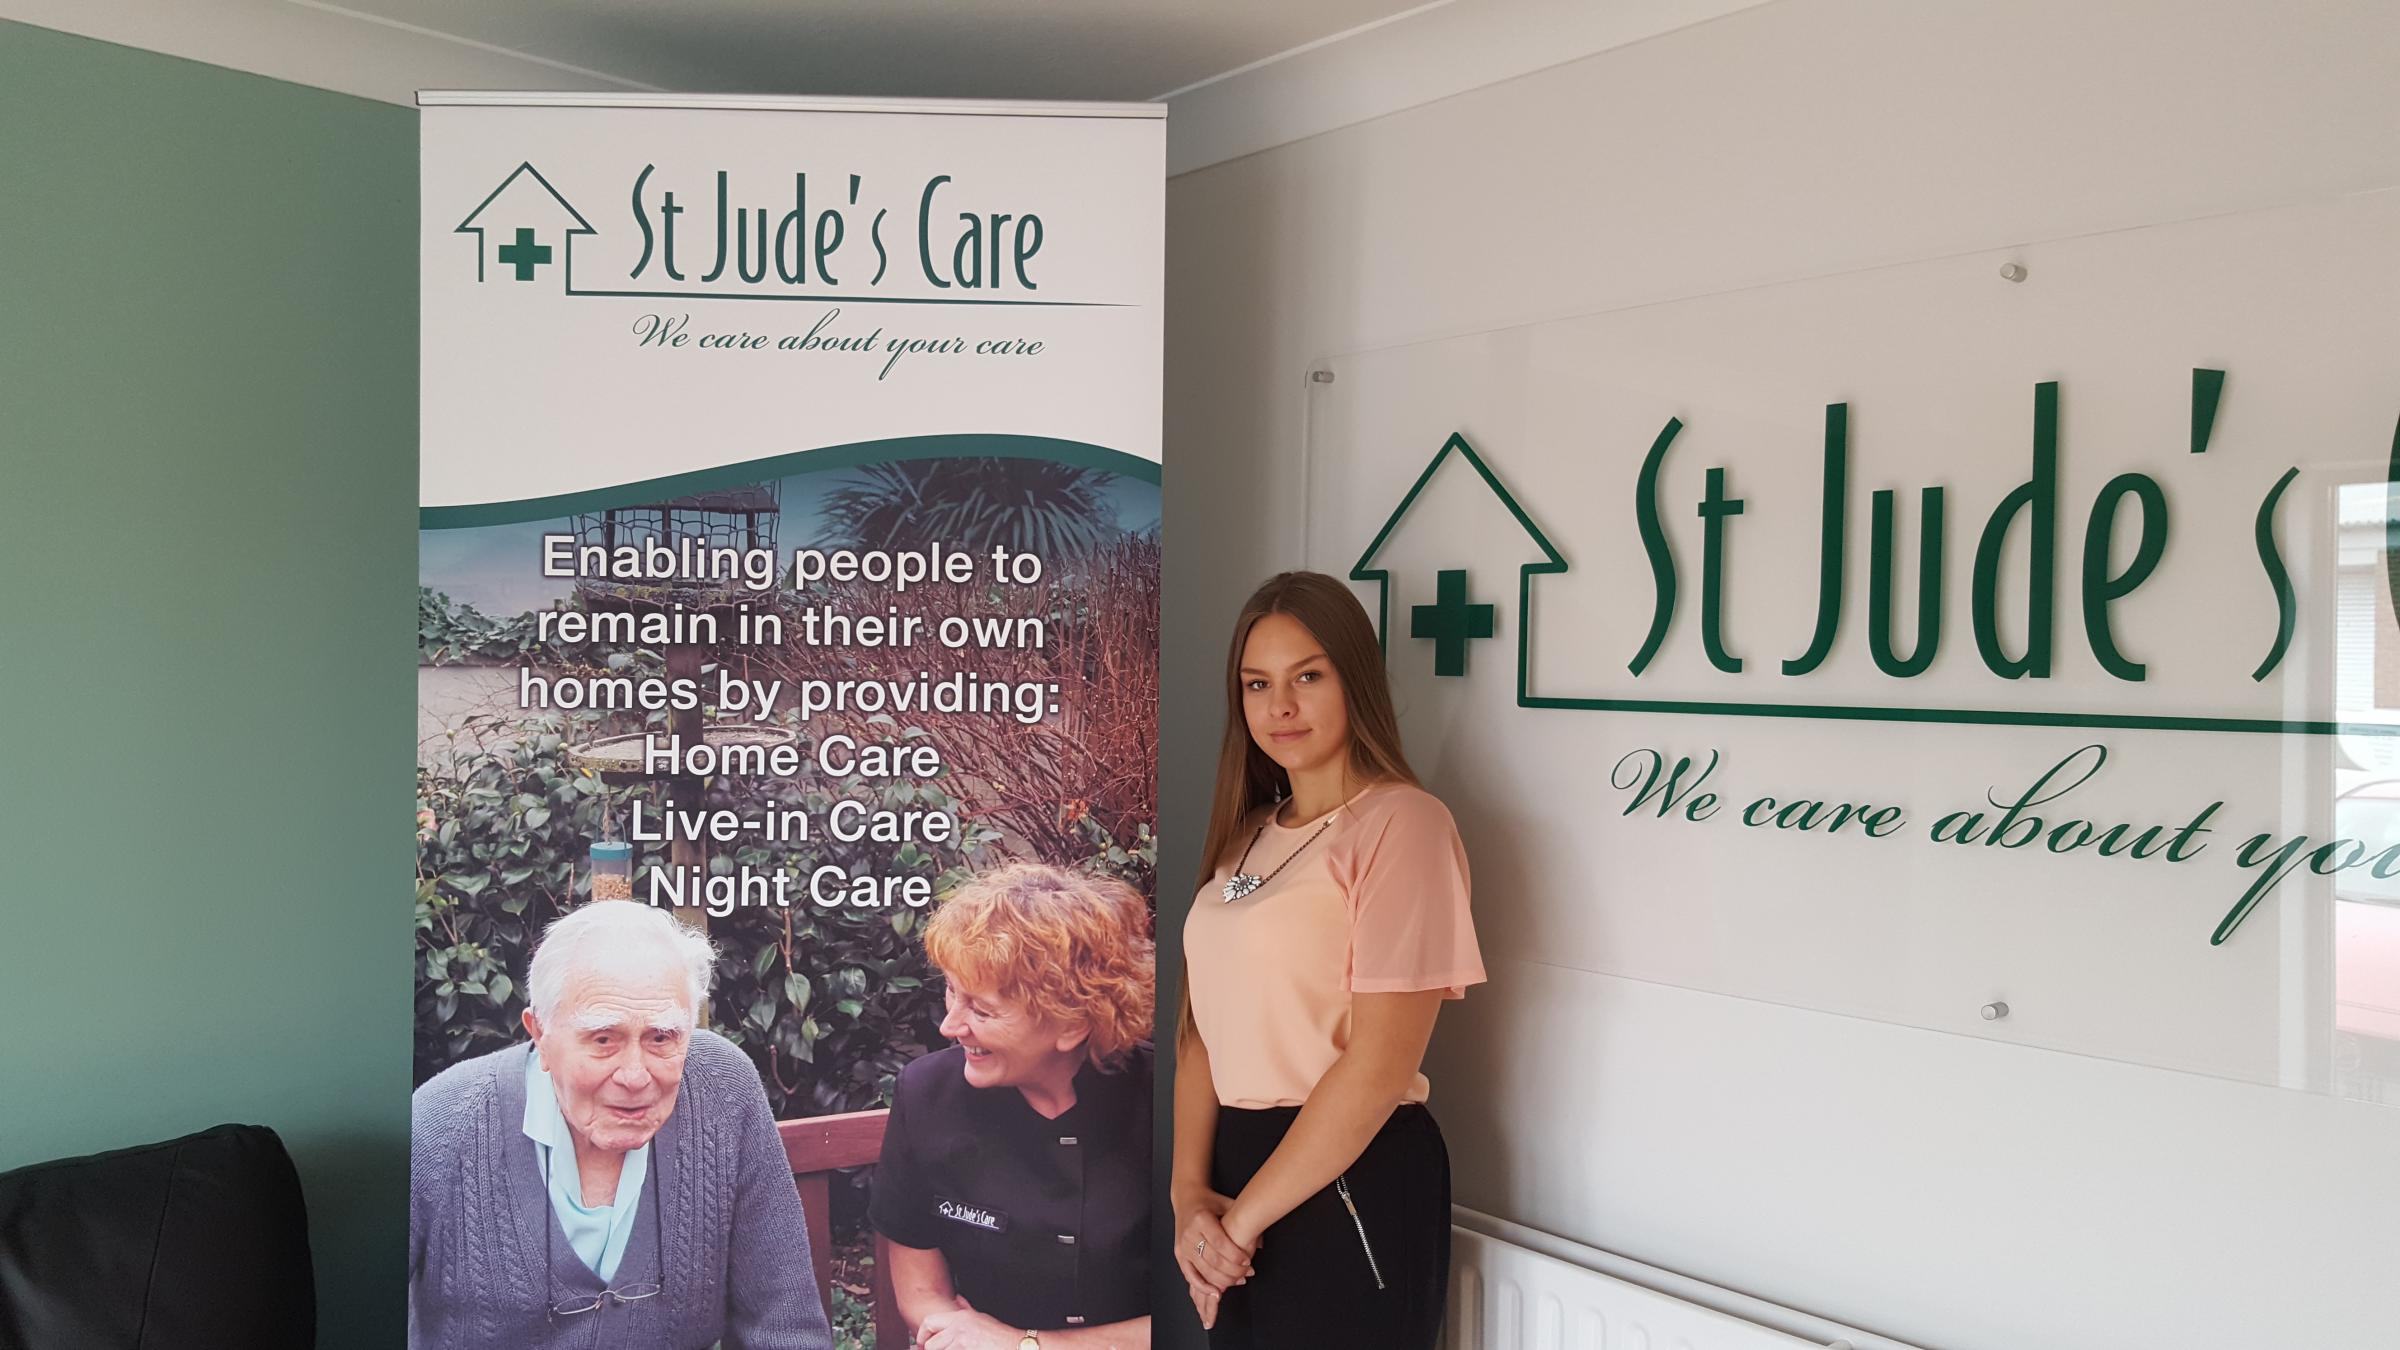 Amelia Townsend, new apprentice at St Jude's Care